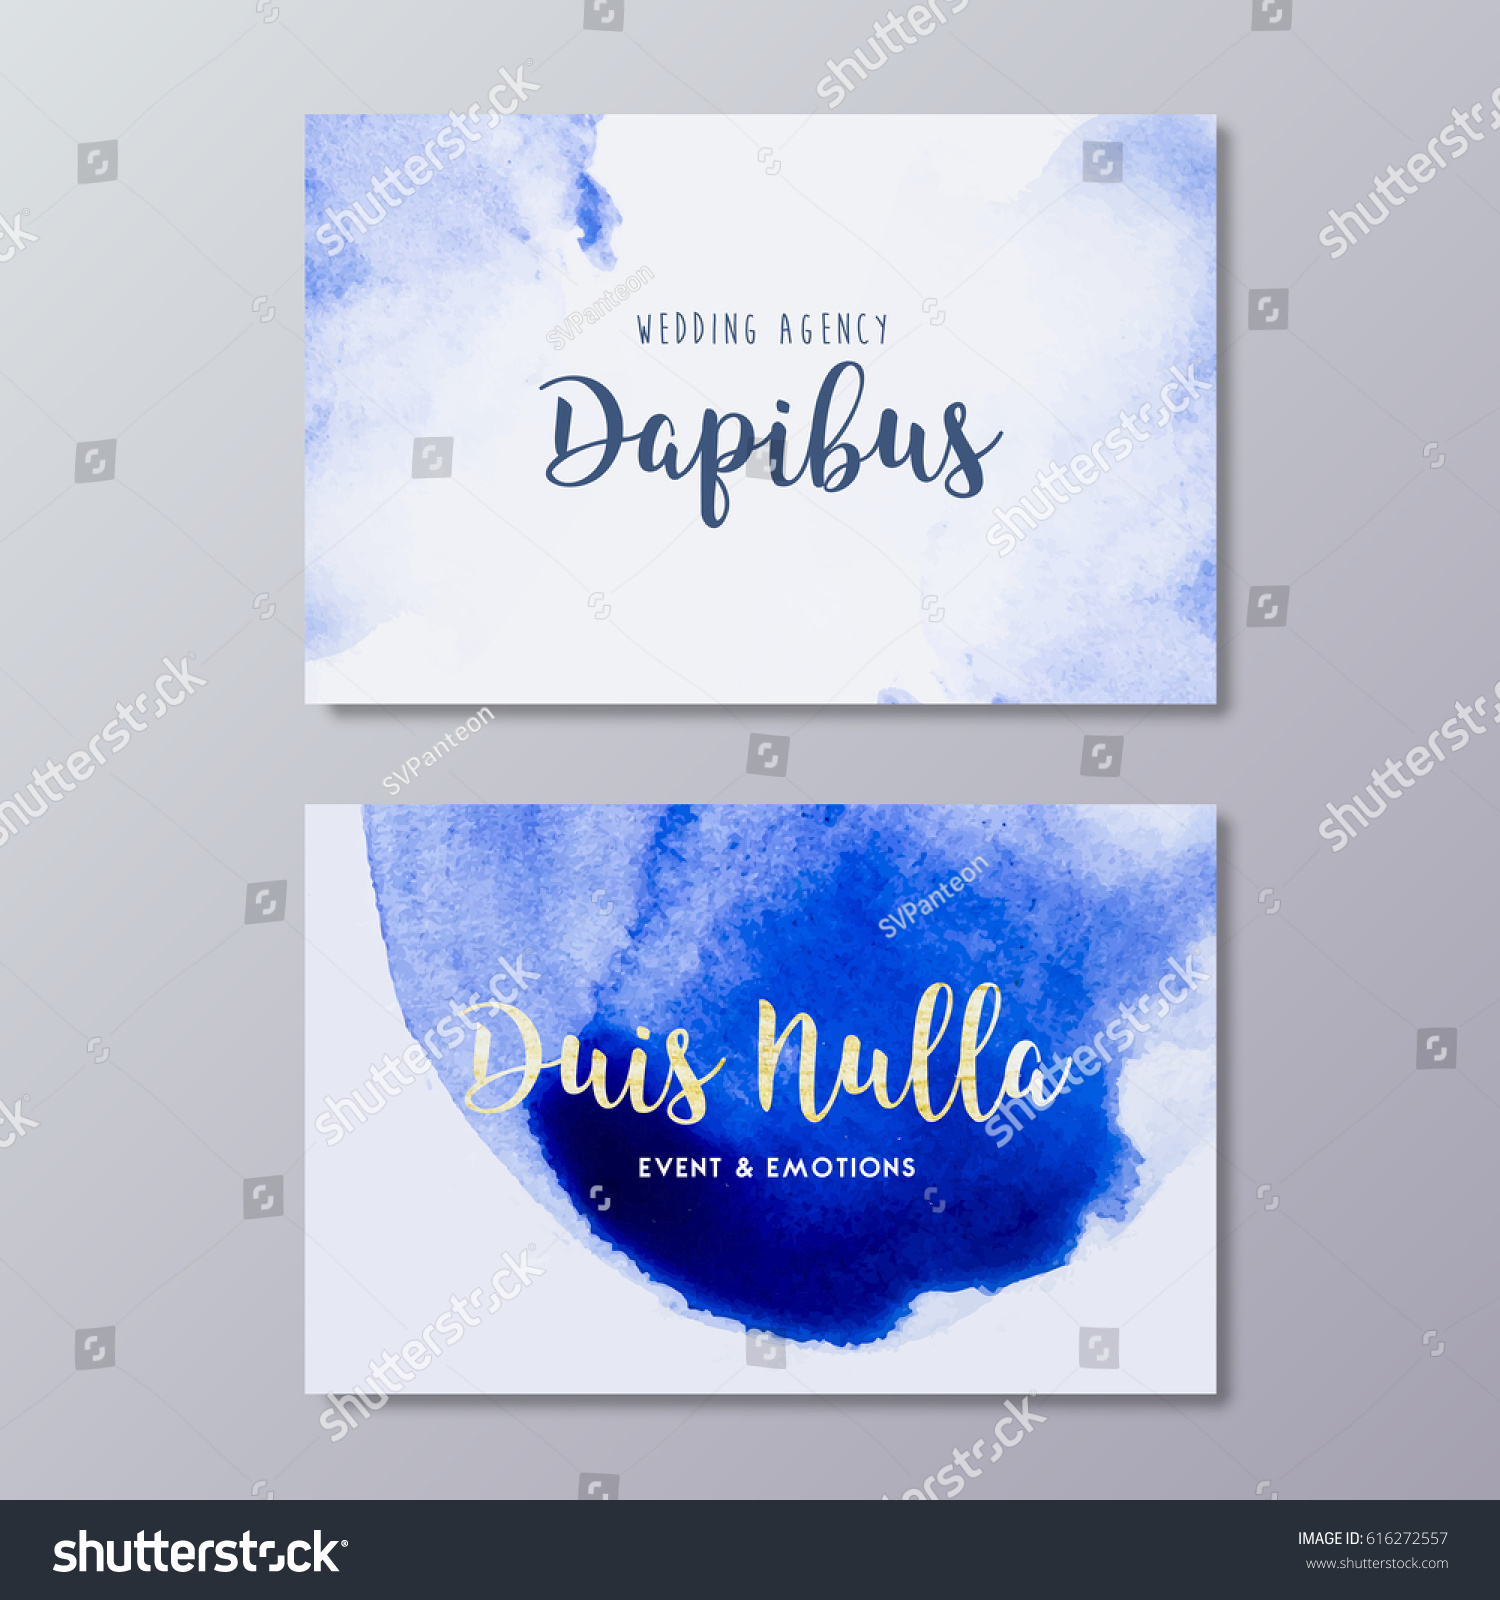 Premade wedding photography business card art stock vector premade wedding photography business card art design vector templates hand drawn abstract blue watercolor spot magicingreecefo Images